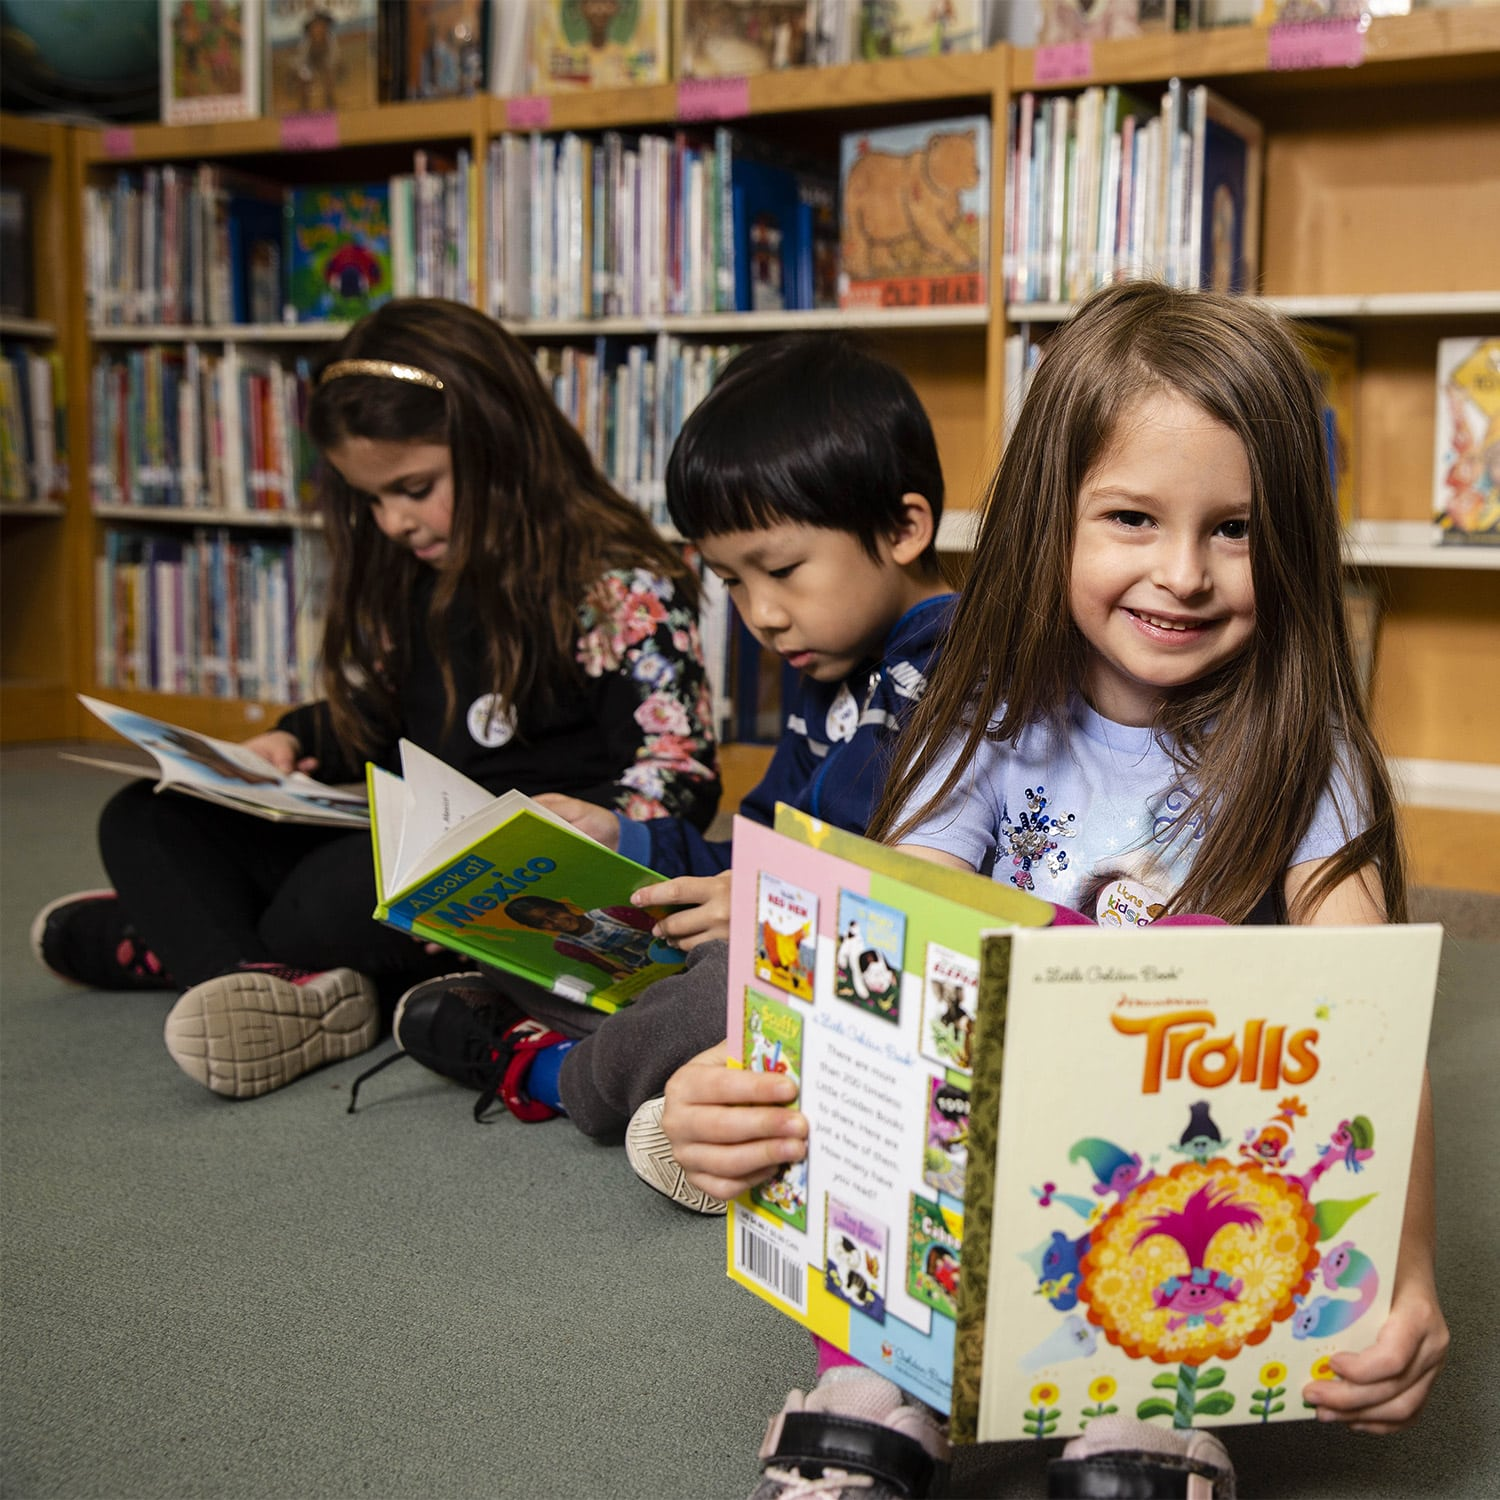 VogelWetmore Library 29 - Share the love of reading